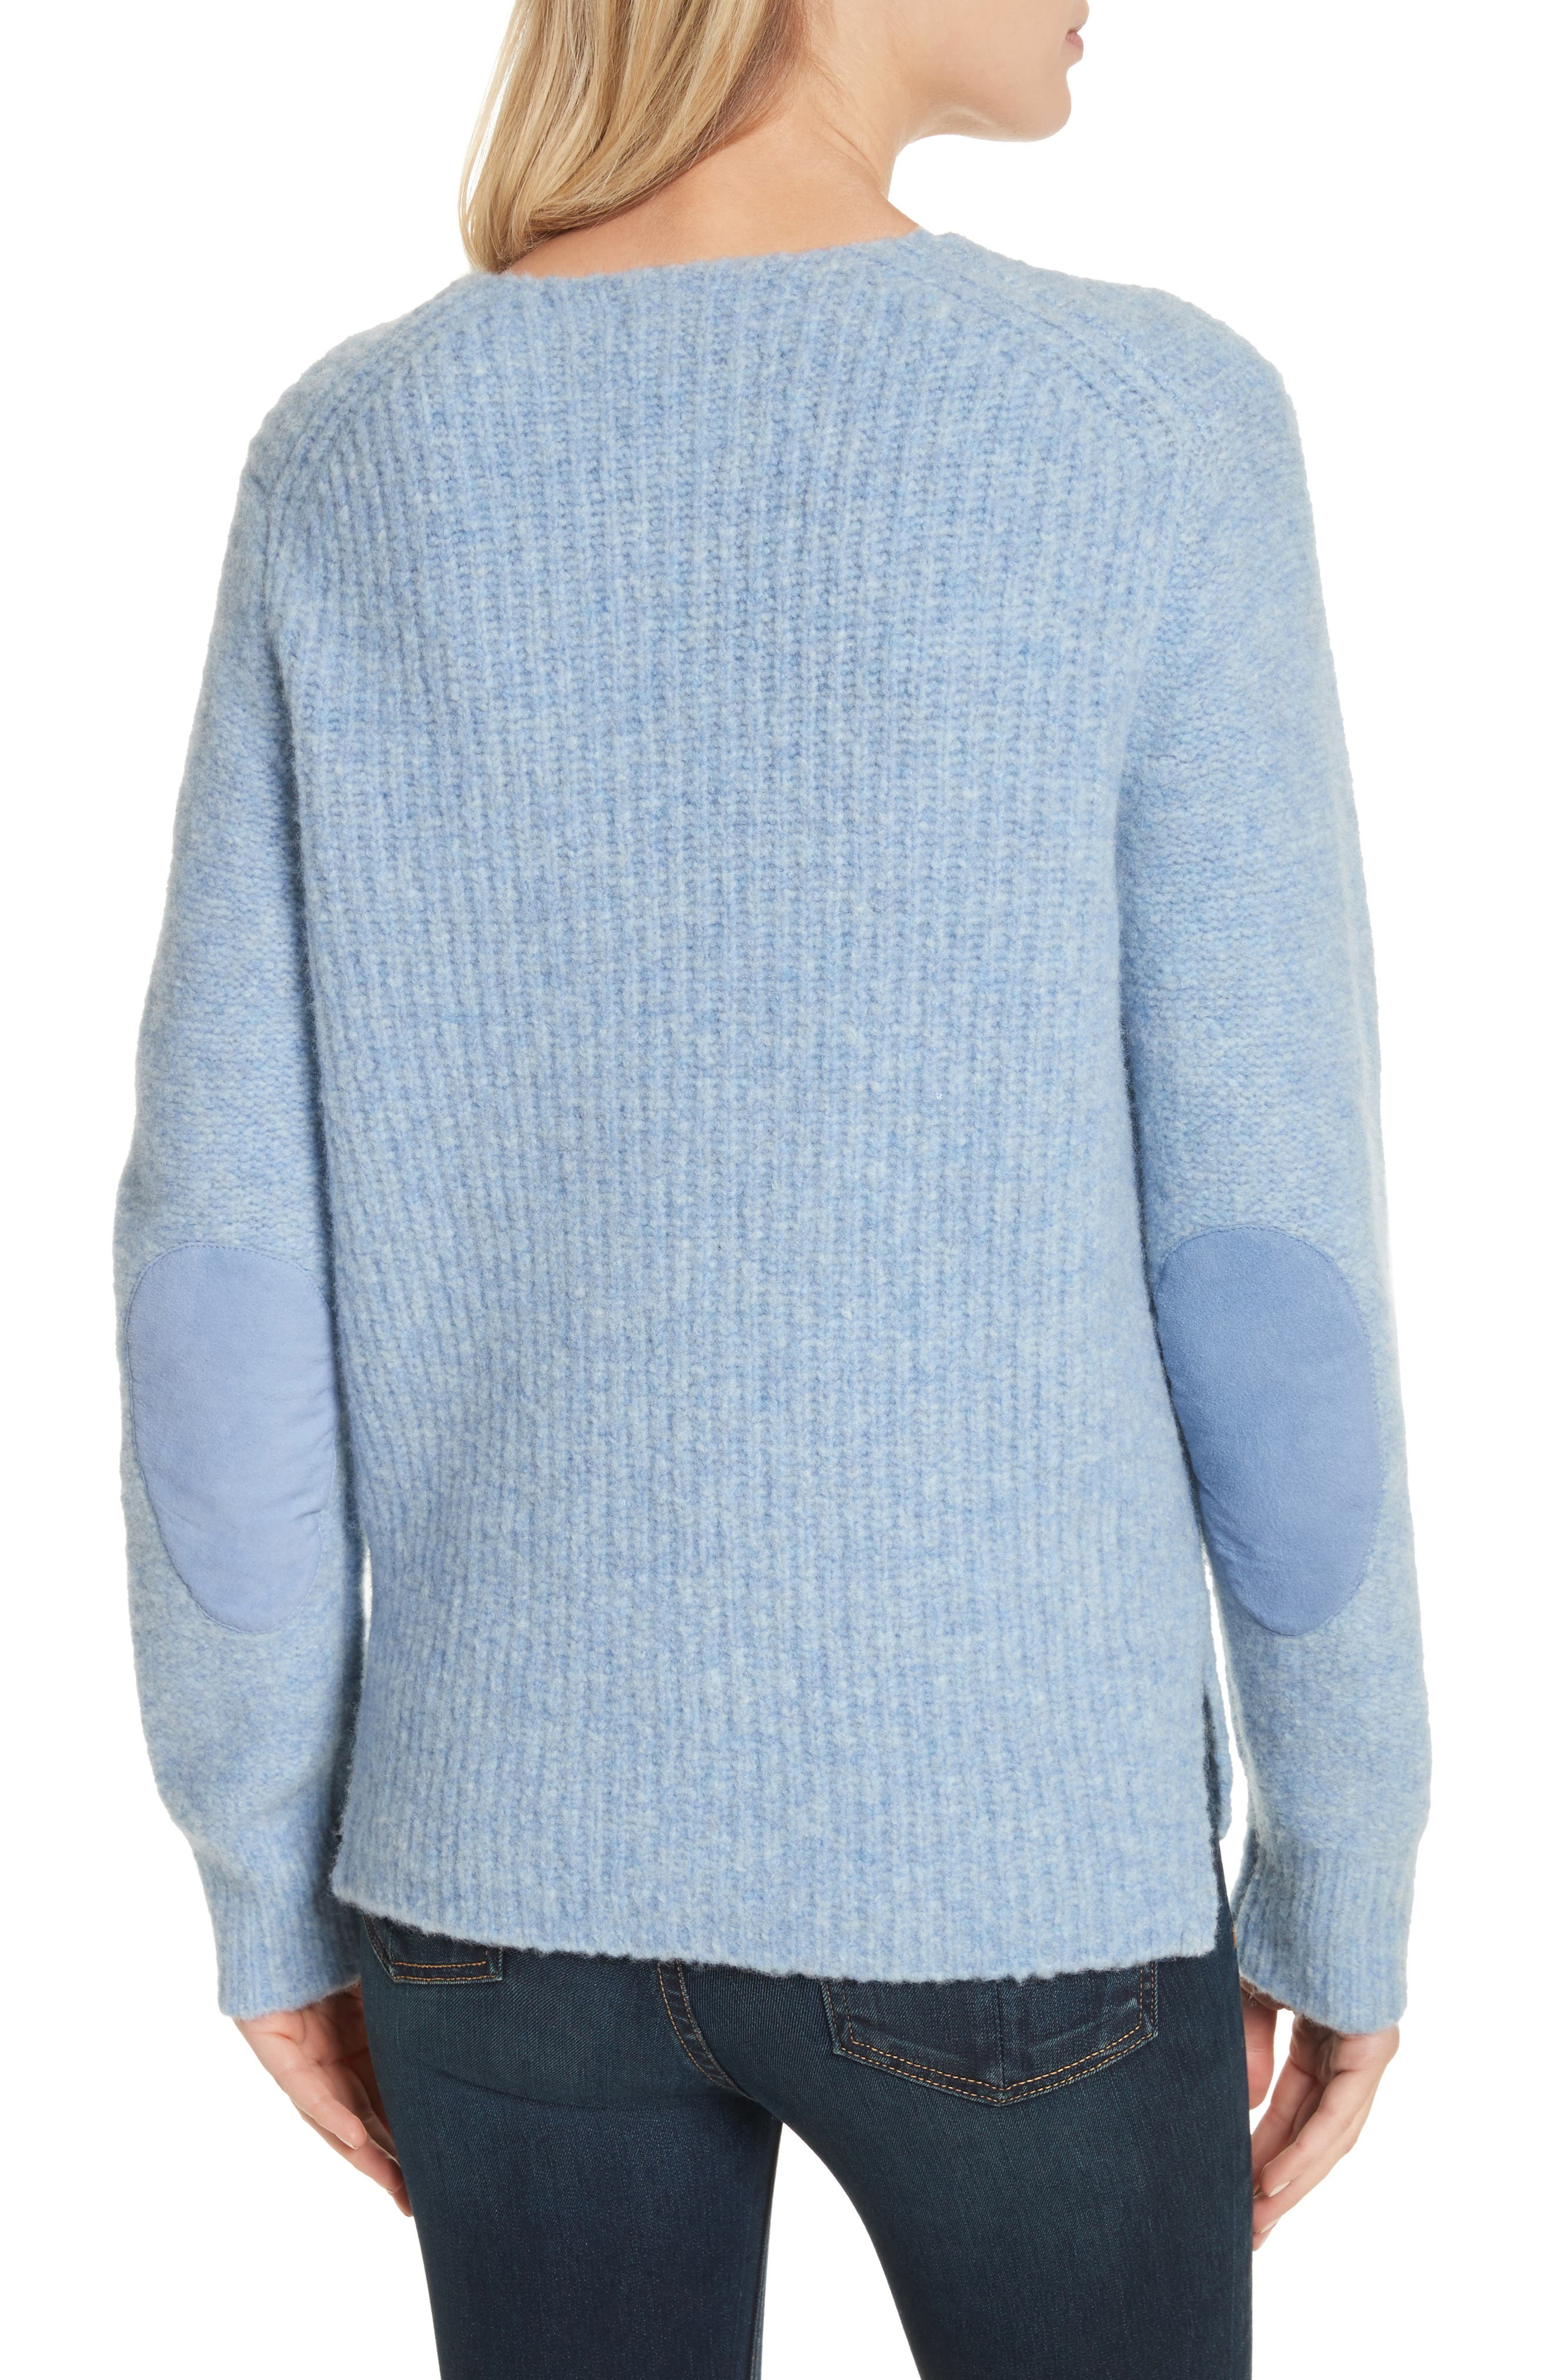 Francie Merino Wool Blend Sweater,                             Alternate thumbnail 2, color,                             455